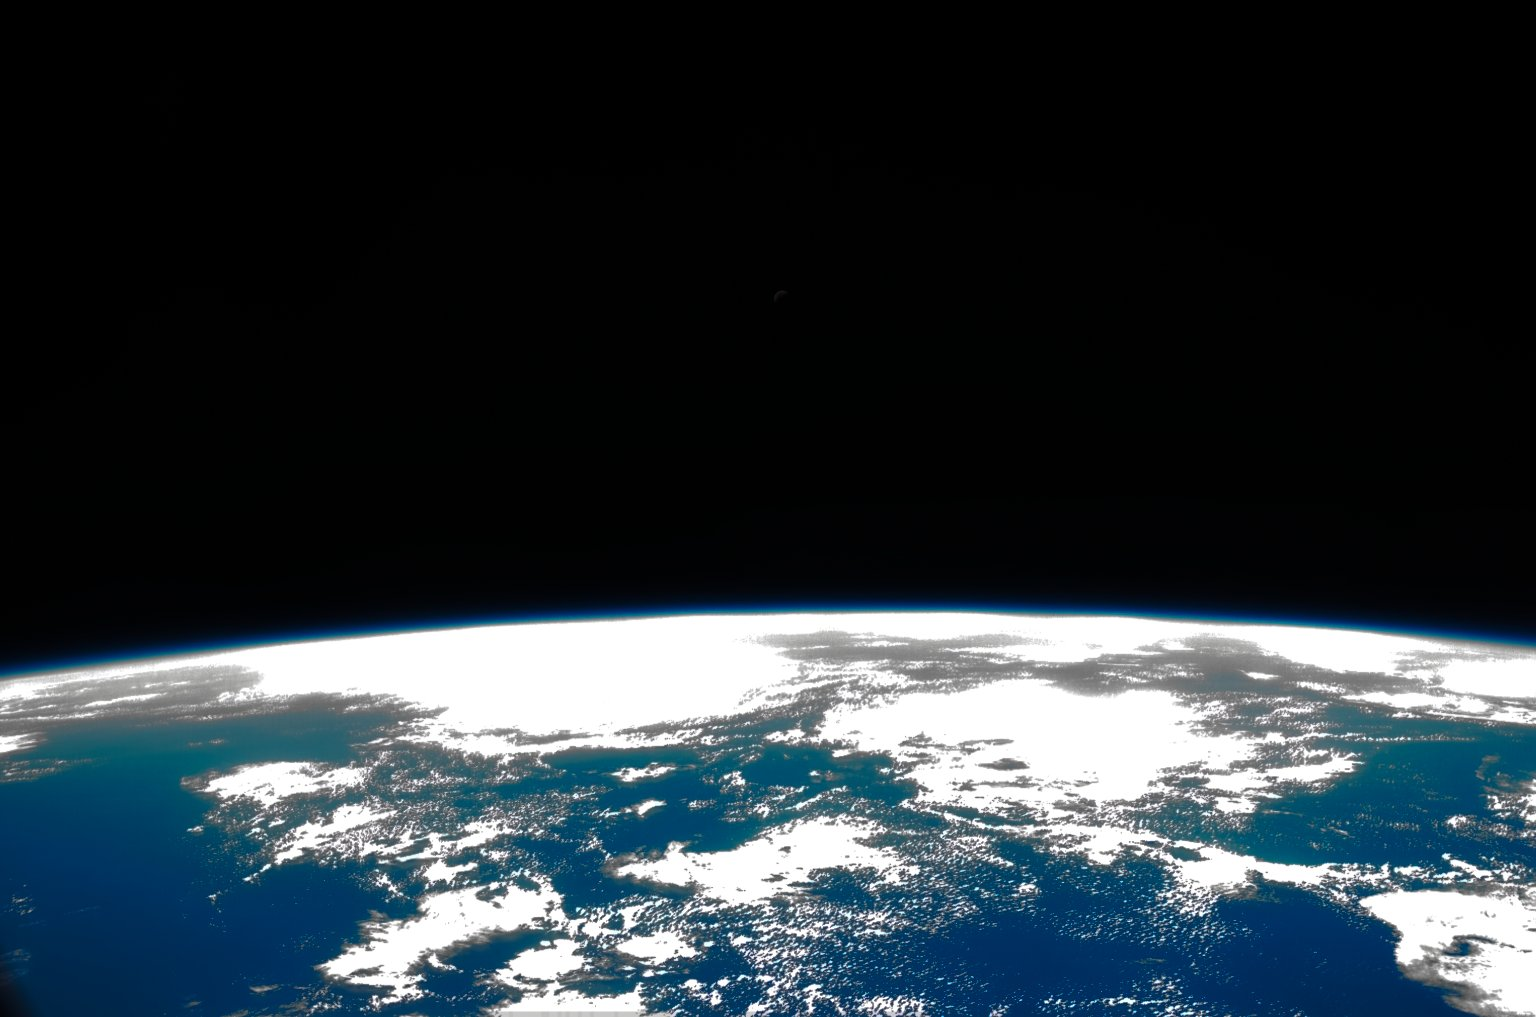 Earth Observations taken by STS-117 Crewmember on Space Shuttle Atlantis